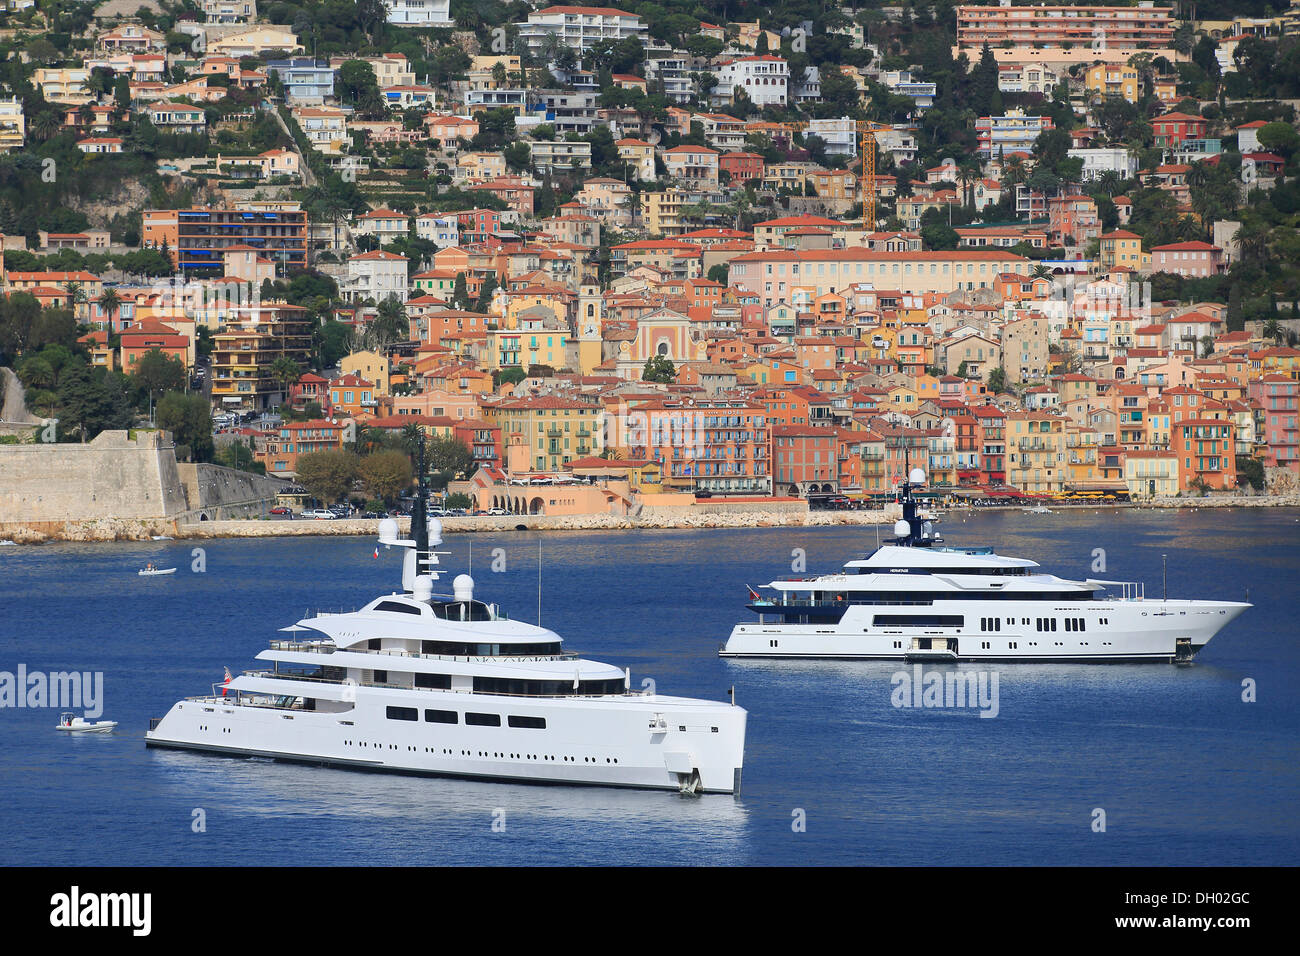 Vava II, a cruiser built by Pendennis Plus, formerly Devenport Yachts, length: 96 m, built in 2012, owned by Ernesto Bertarelli, - Stock Image